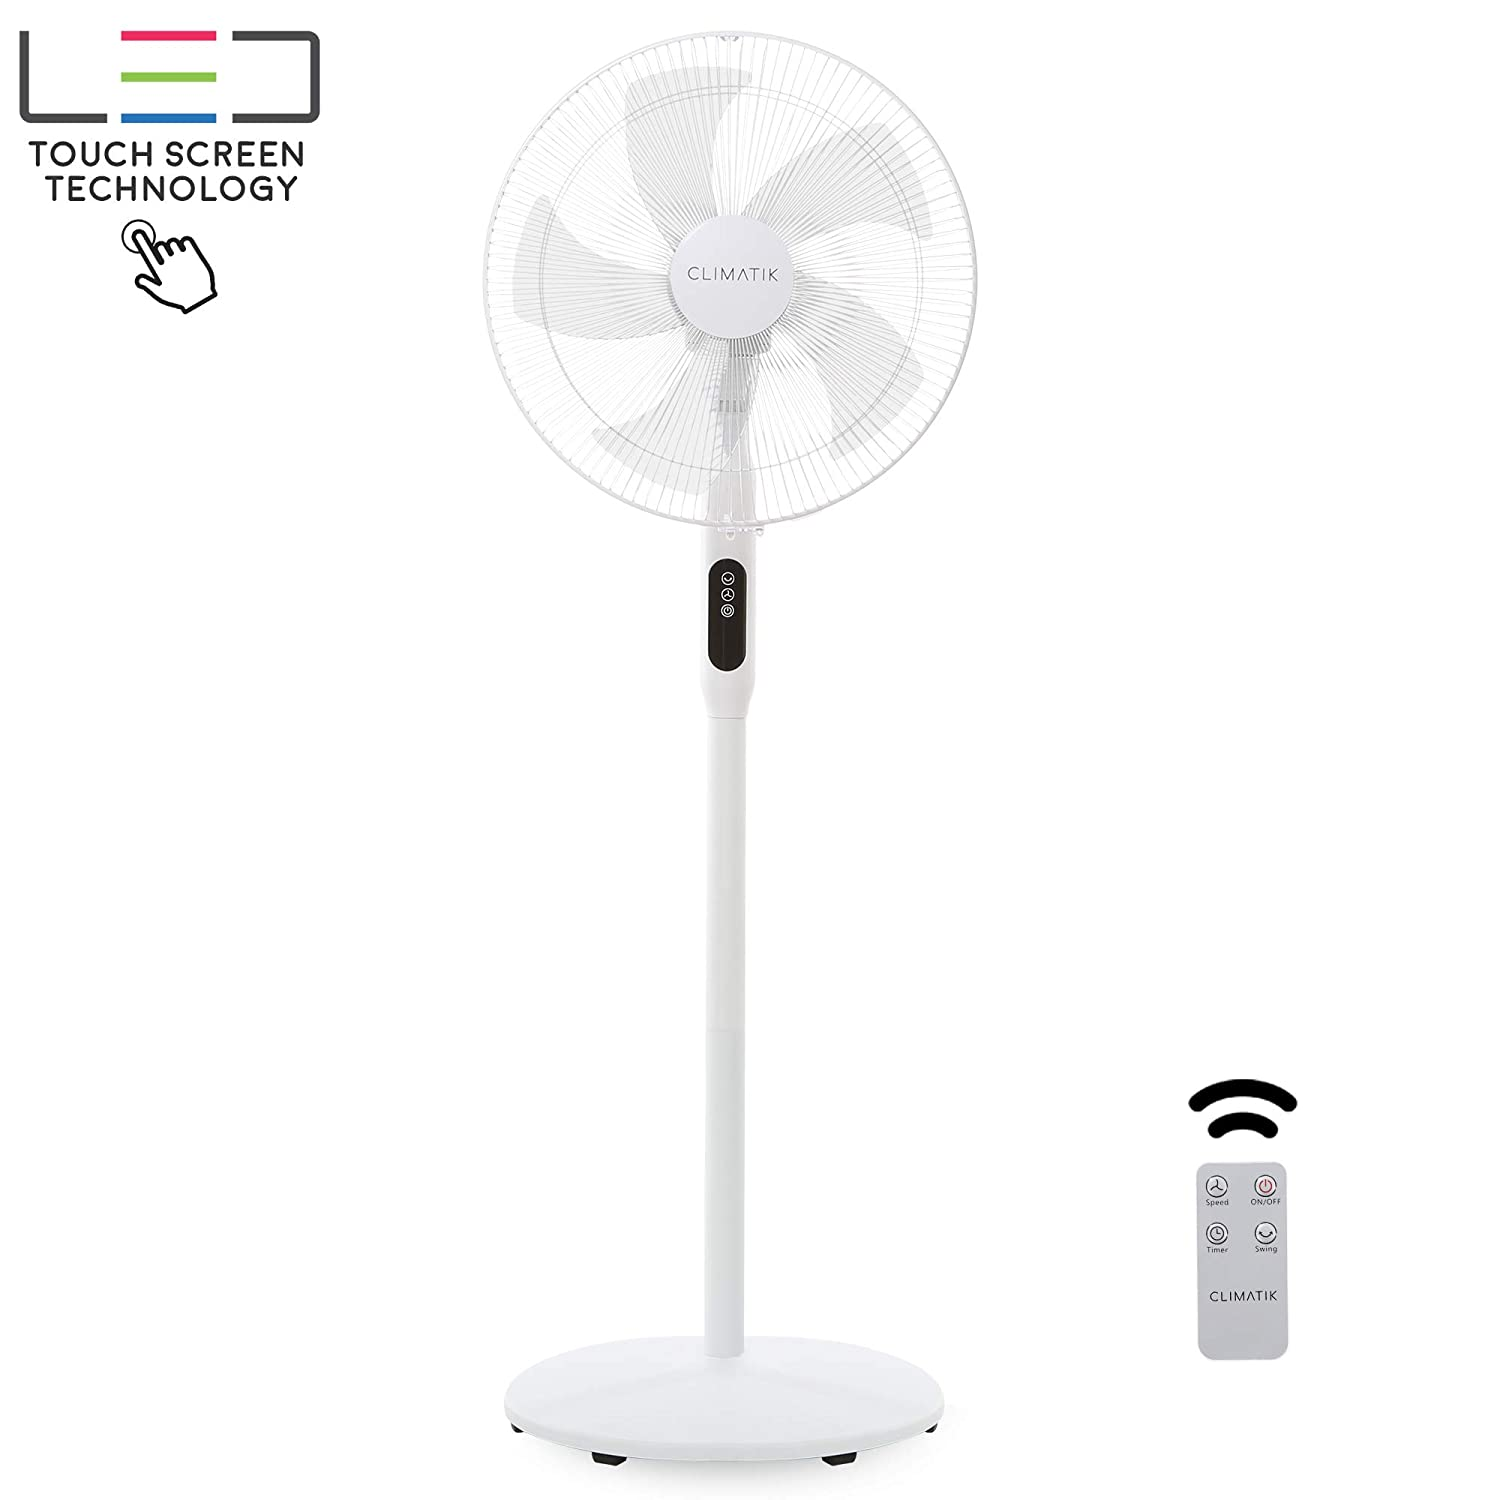 Climatik 16-Inch Pedestal Fan with Remote Control and LED Display 3 Operational Modes 80 Oscillation Adjustable Height Pivoting Fan Head Perfect for Homes, Offices and Bedrooms CPF-100